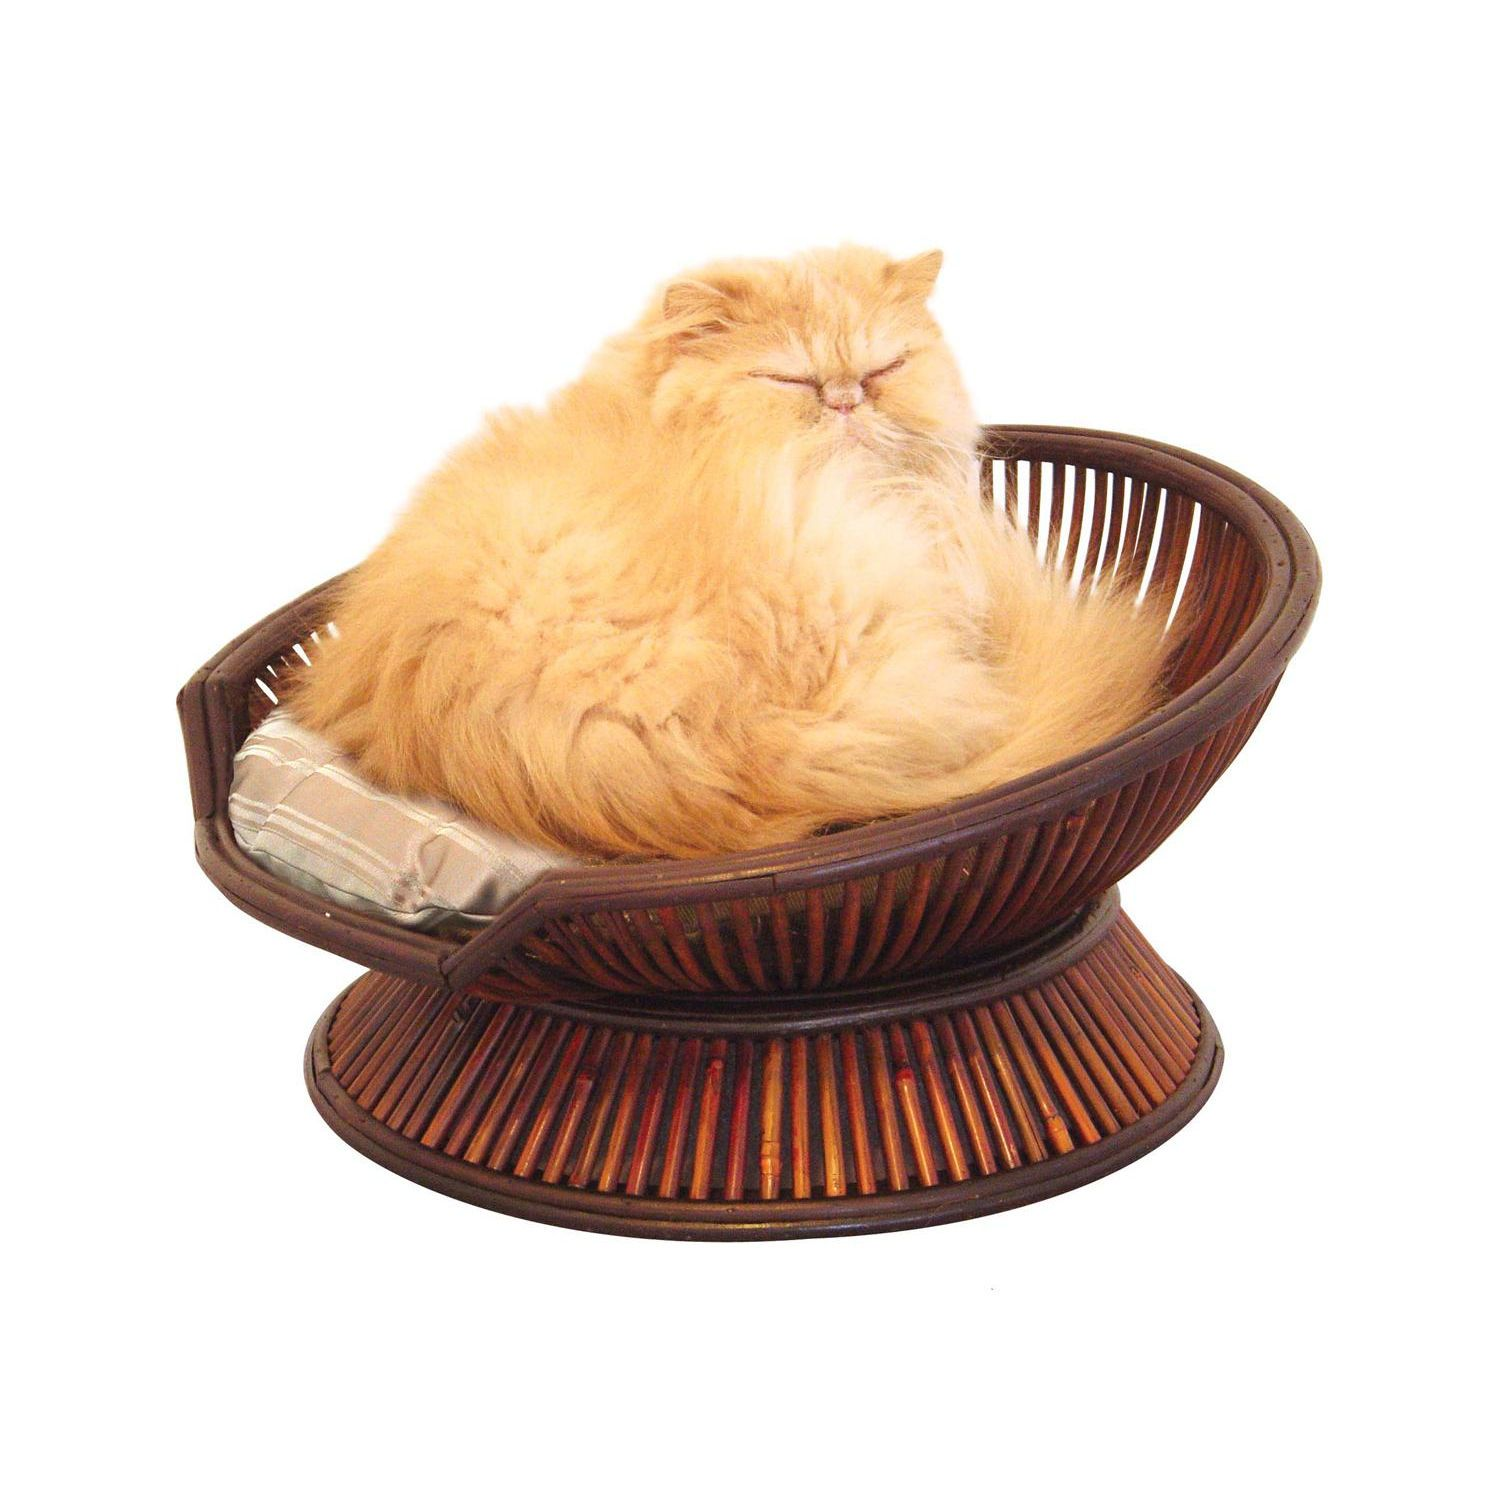 Pin by Marian Hardy on Really Cute Animals Cat bed